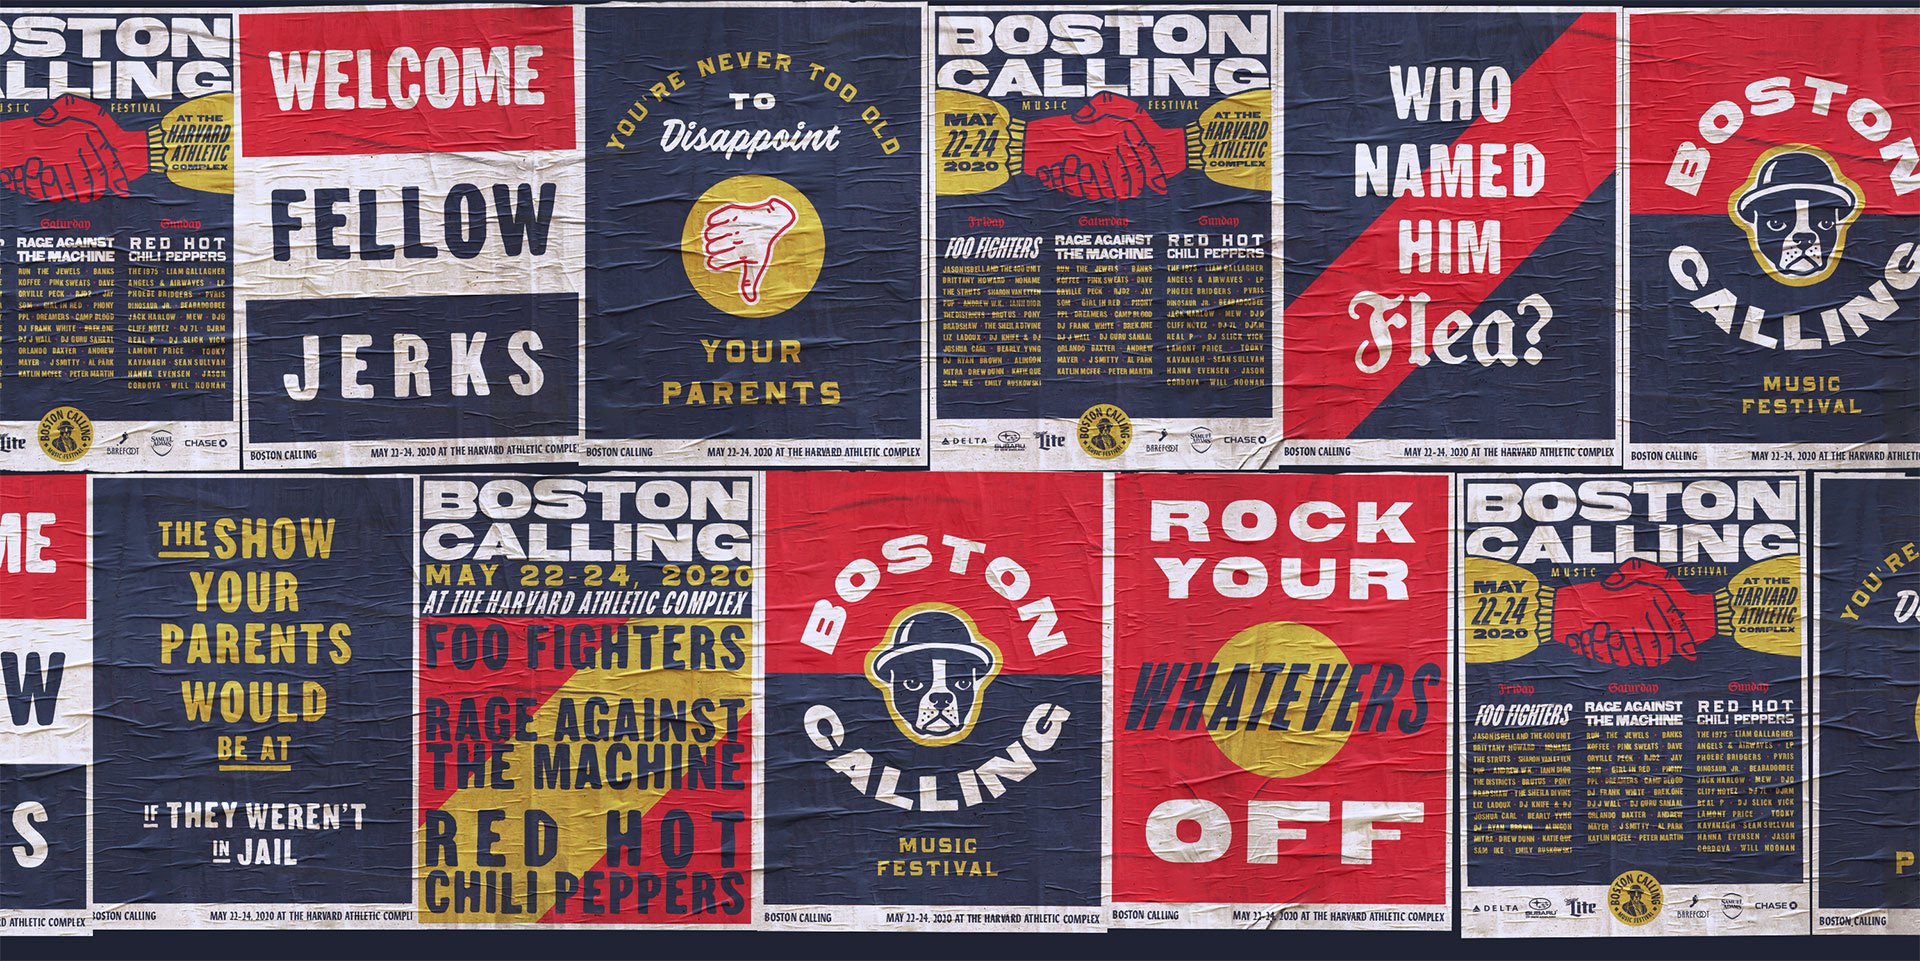 New Logo and Identity for Boston Calling by Contino Studio and Colossus